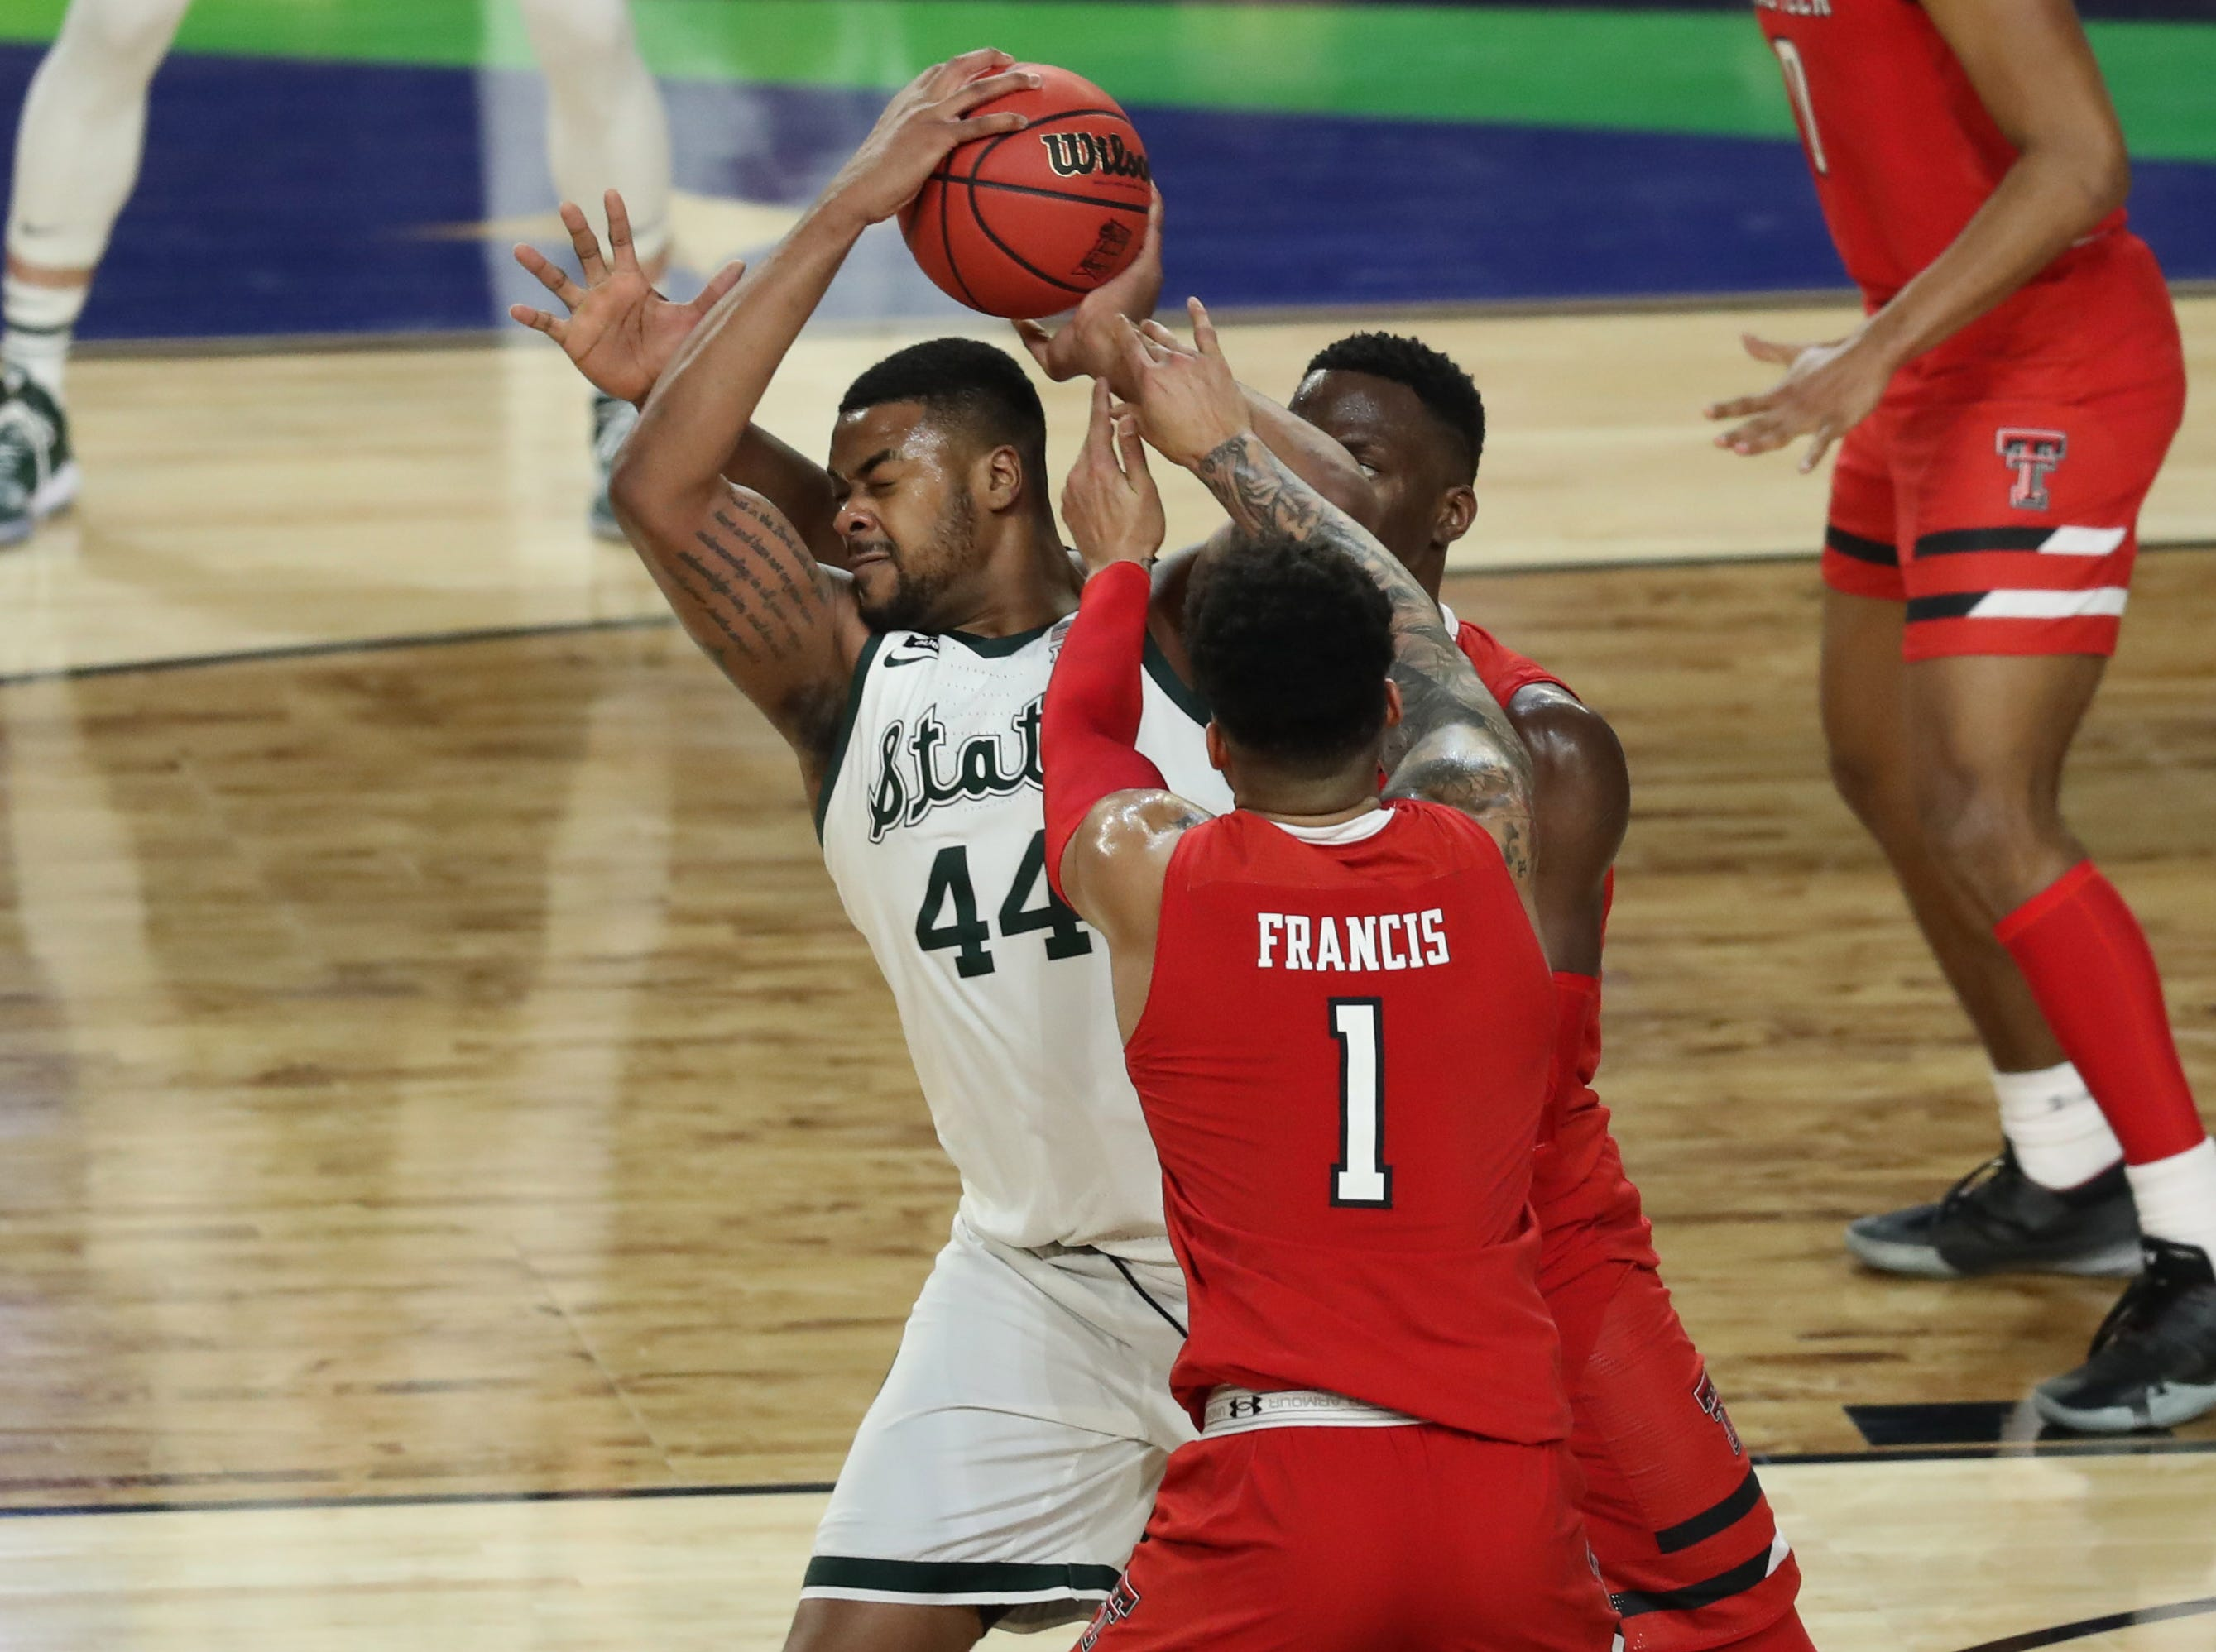 Apr 6, 2019; Minneapolis, MN, USA; Michigan State Spartans forward Nick Ward (44) is pressured by the defense of Texas Tech Red Raiders guard Brandone Francis (1) during the second half in the semifinals of the 2019 men's Final Four at US Bank Stadium. Mandatory Credit: Brace Hemmelgarn-USA TODAY Sports